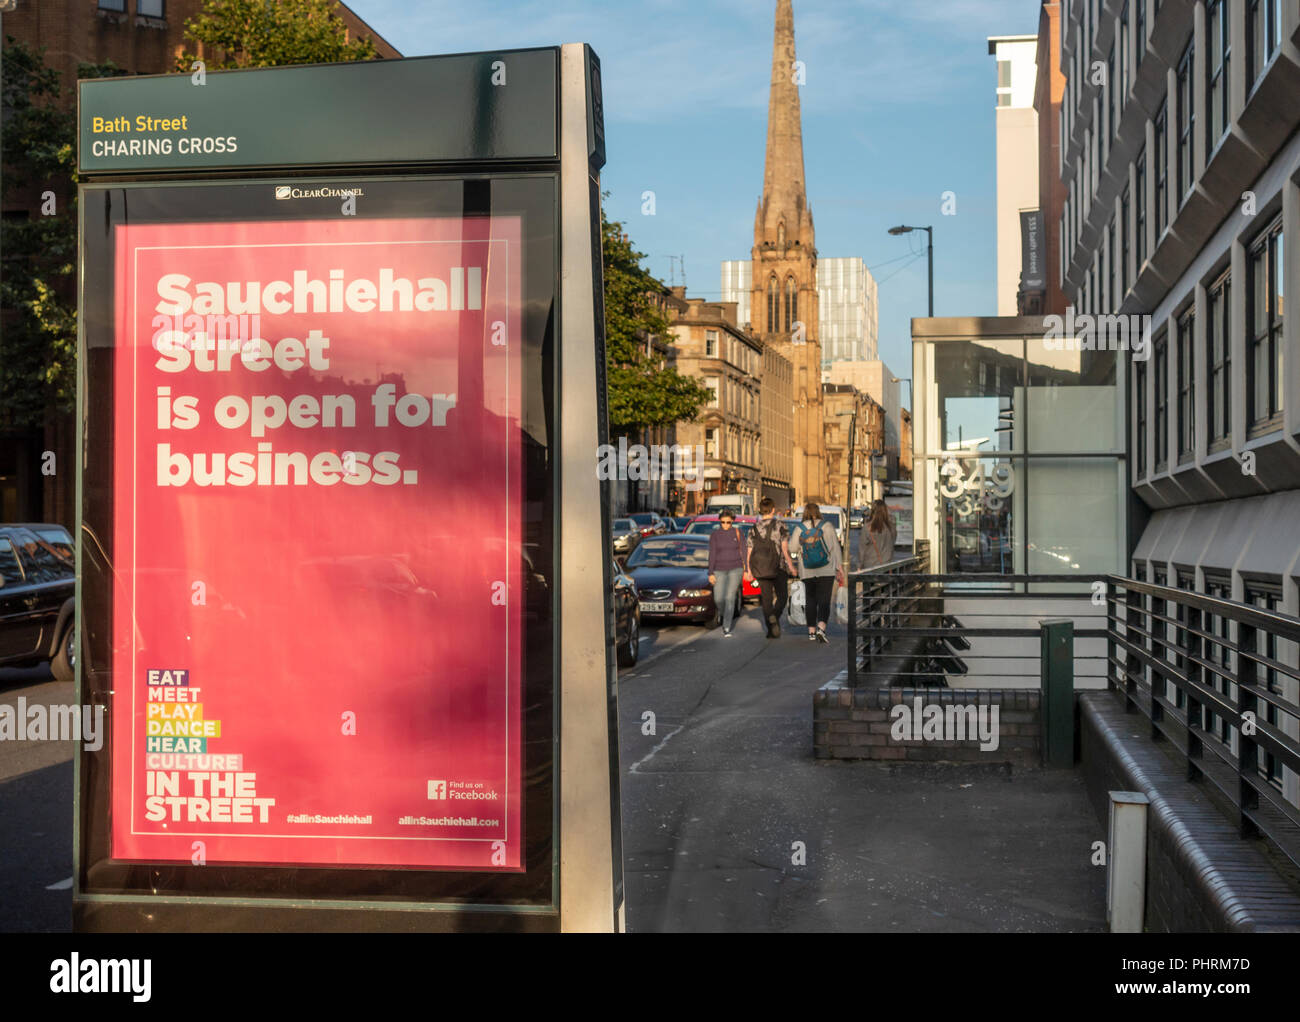 Sign on Bath Street in Glasgow city centre saying 'Sauchiehall Street is open for business' following two major fires in Sauchiehall St. - Stock Image